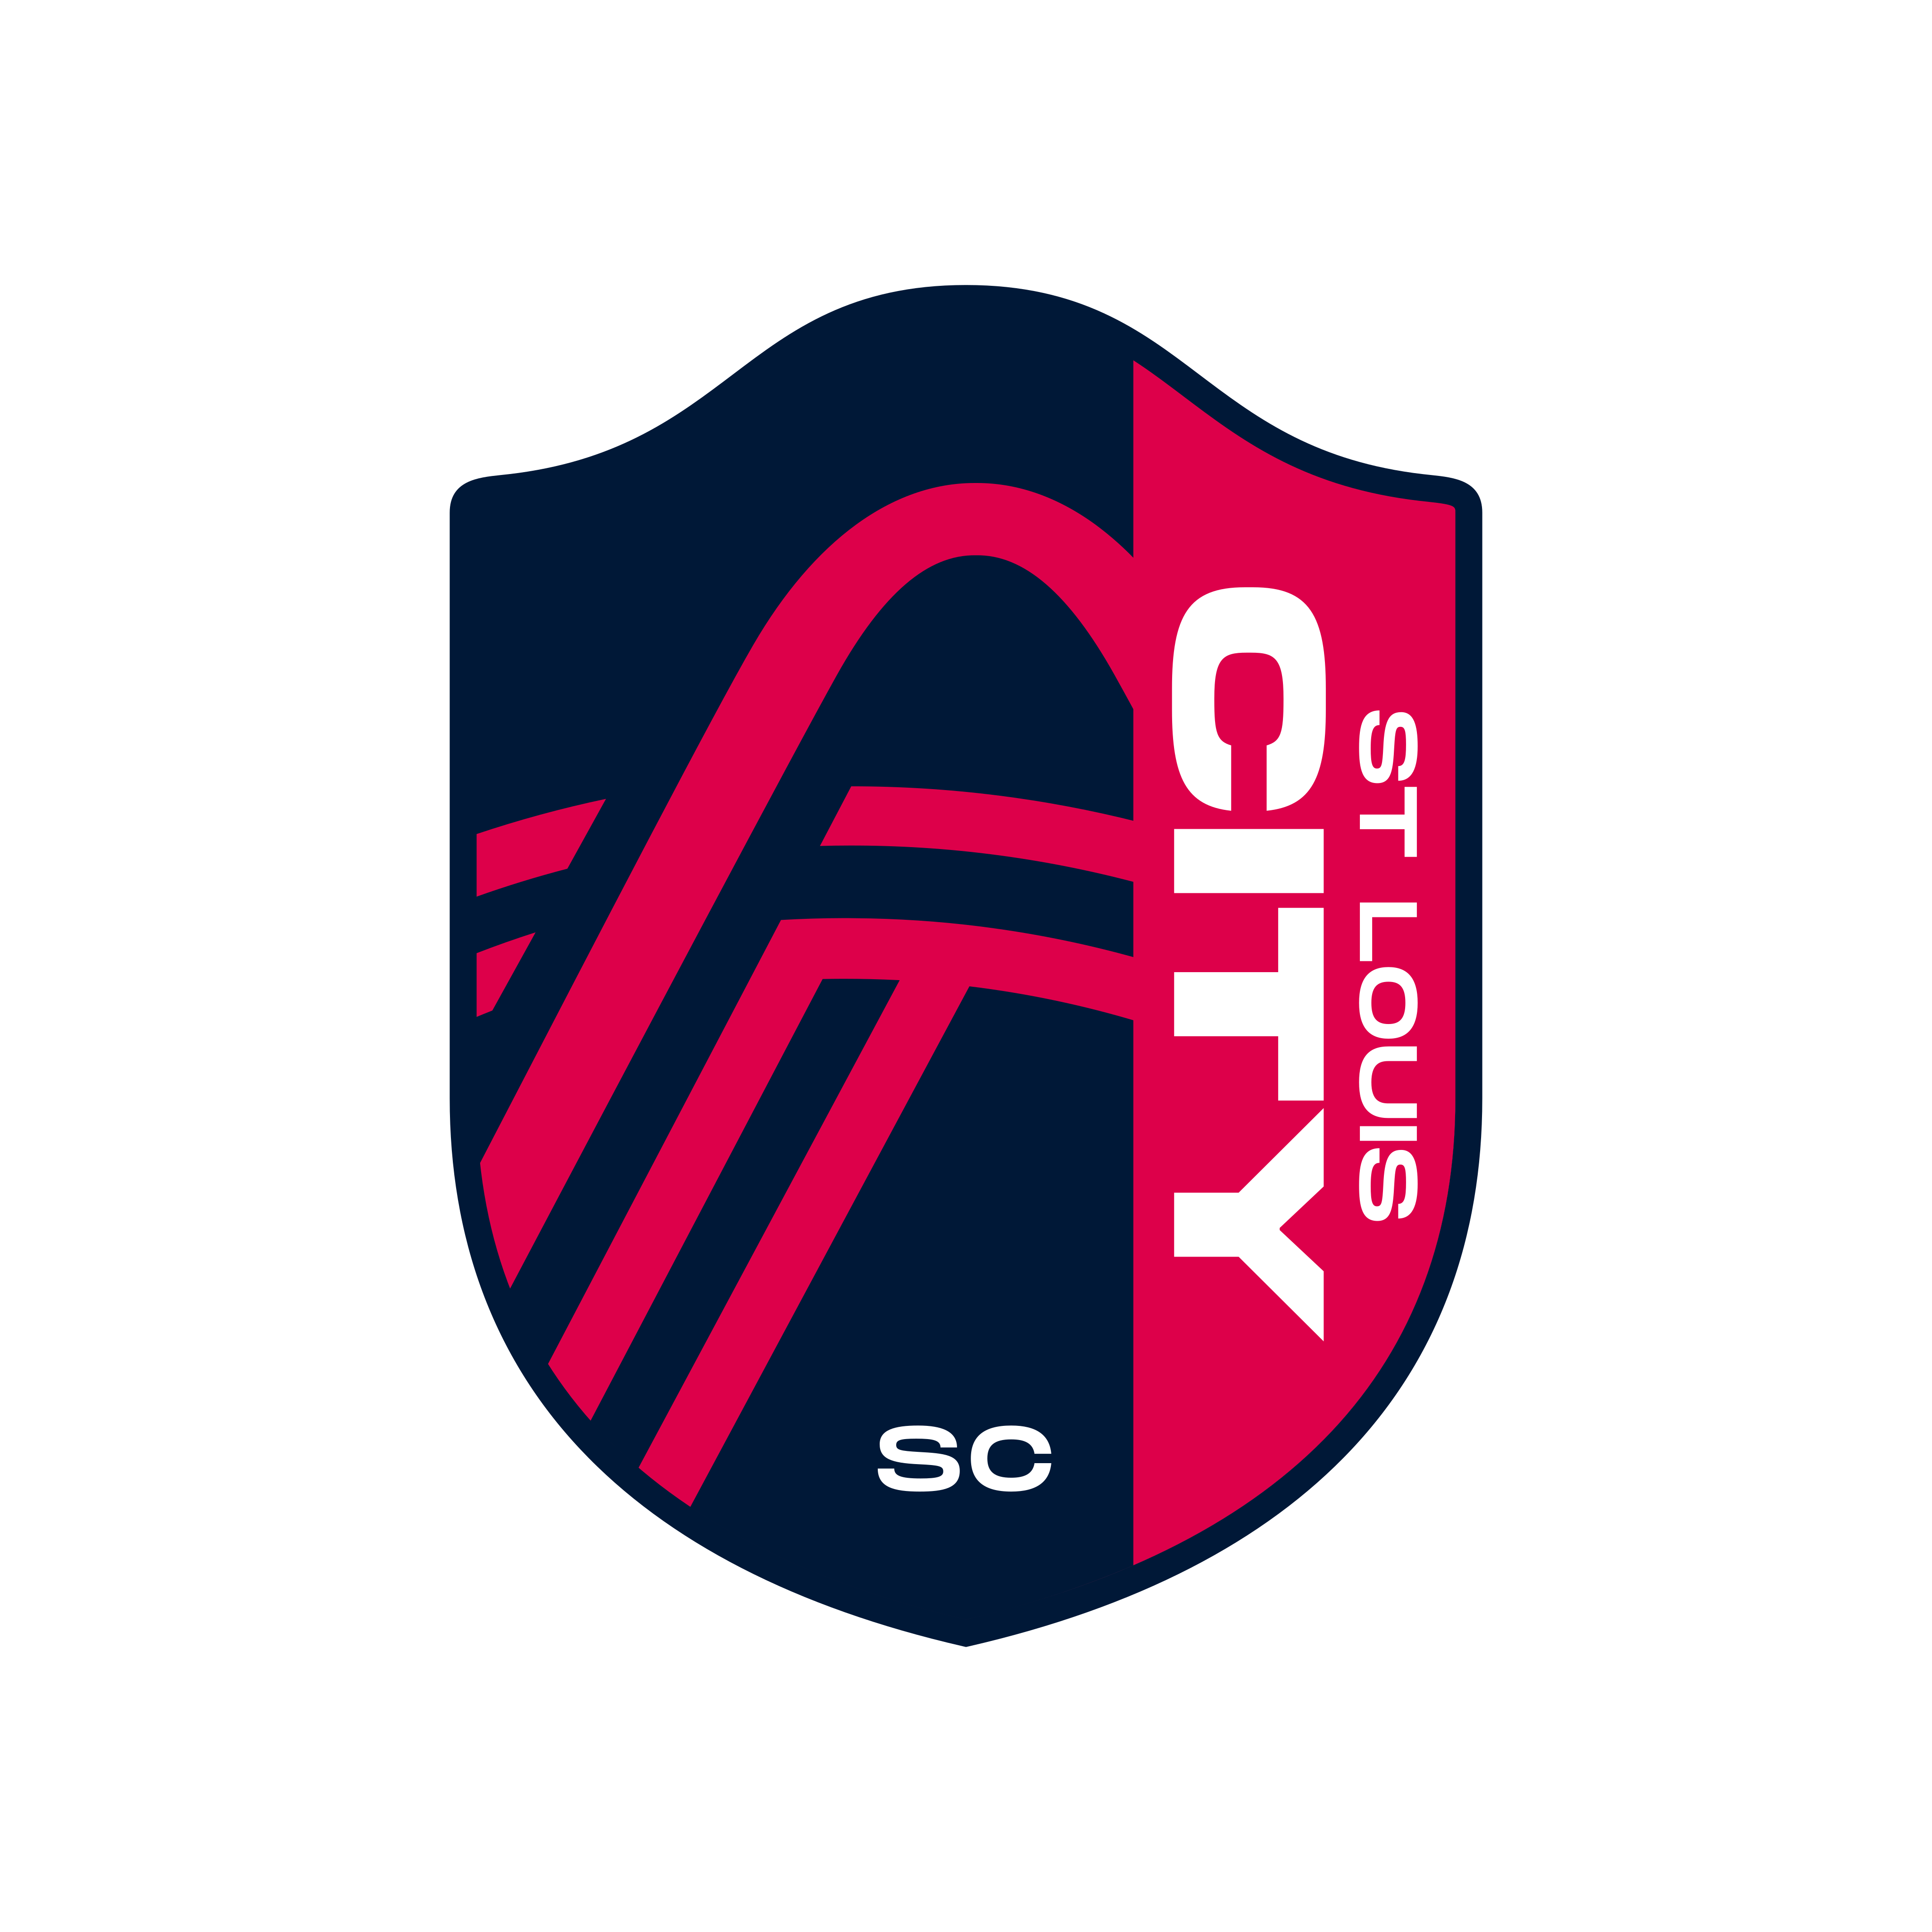 st louis city sc logo 0 - St. Louis City SC Logo